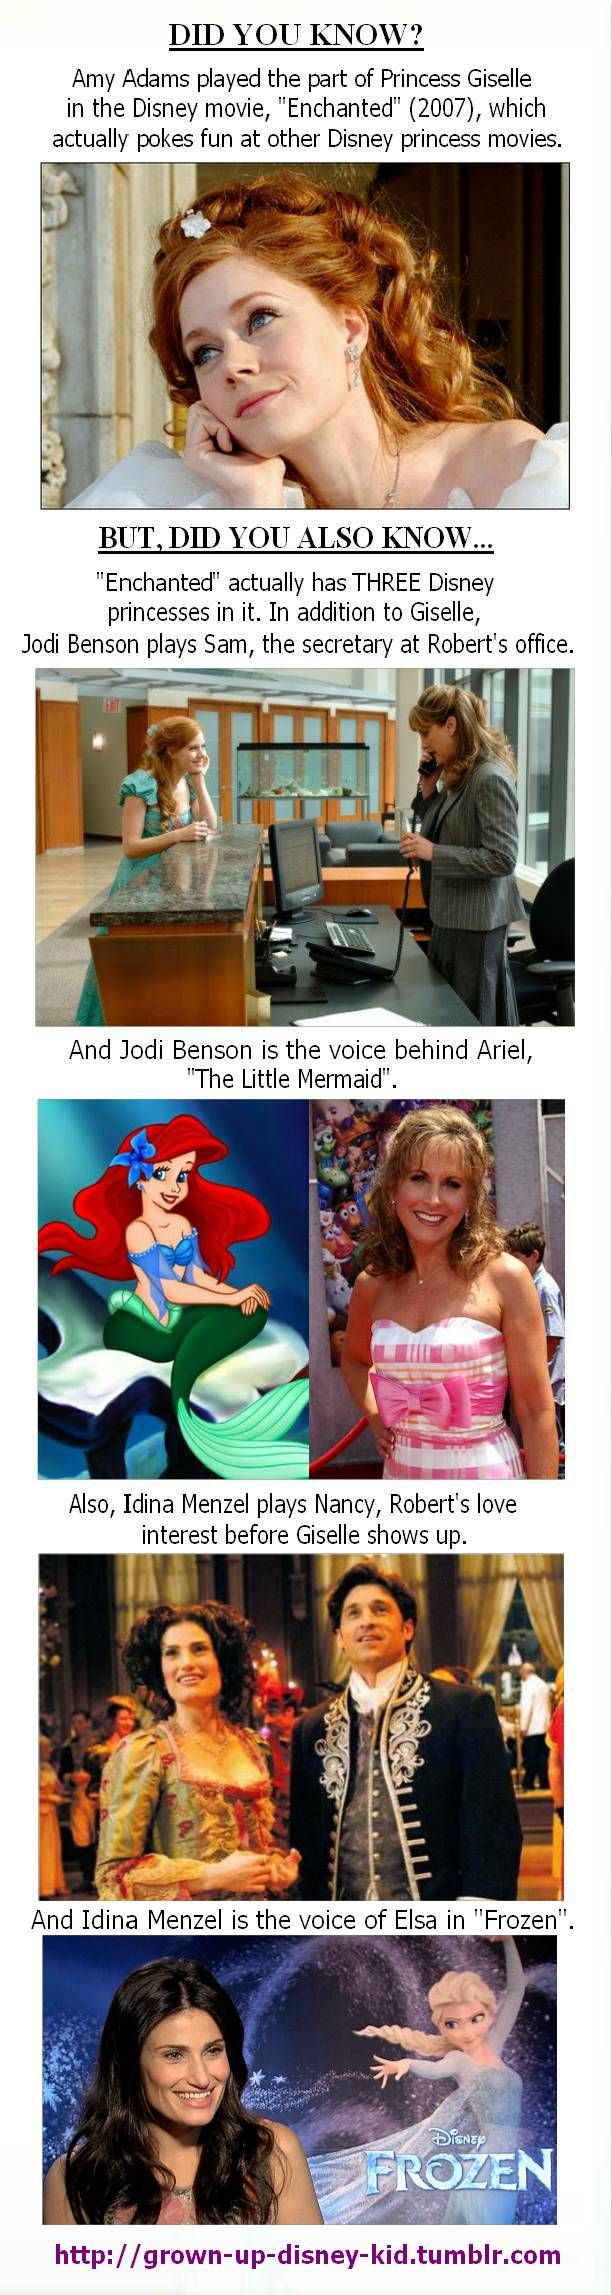 Not only this....but the voices of cinderella and snow white are also in this movie....